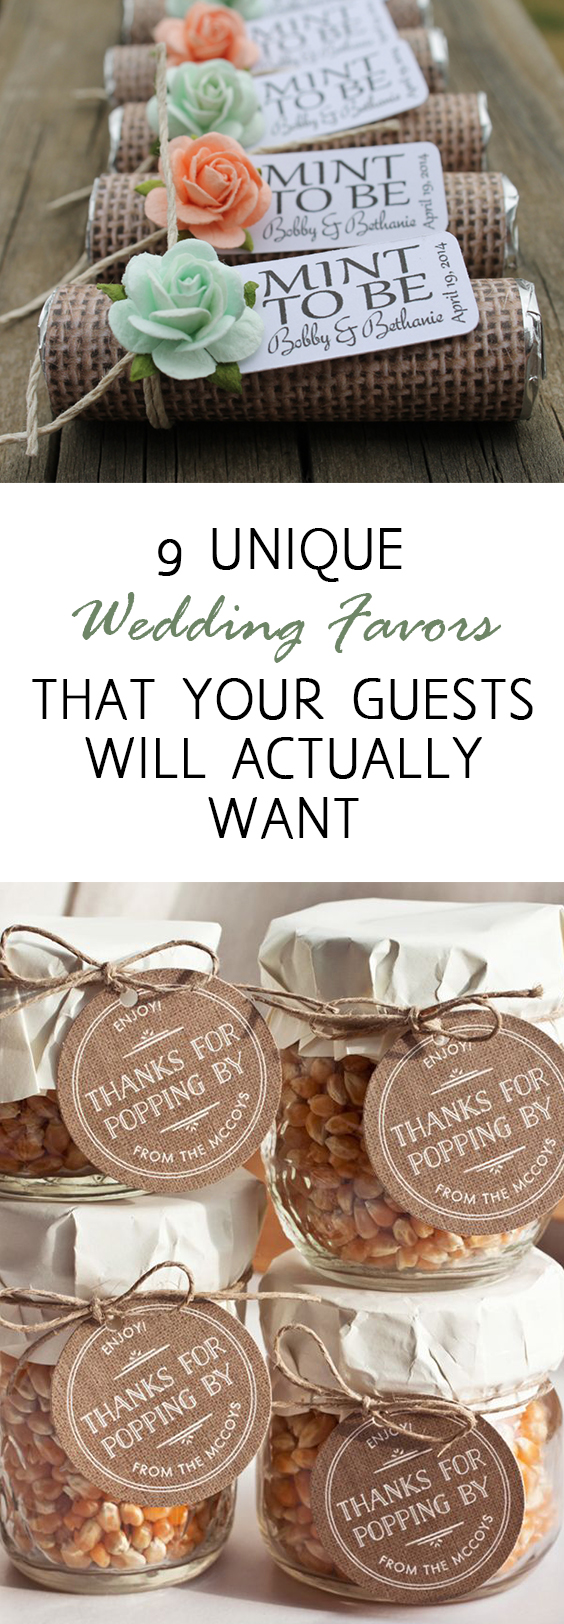 Wedding favors, wedding favor ideas, DIY wedding favors, popular pin, DIY wedding, wedding tips, wedding hacks, unique wedding favor ideas, inexpensive wedding favors, wedding favors, clever wedding favors, wedding reception ideas. #wedding #dreamwedding #diywedding #weddingreception